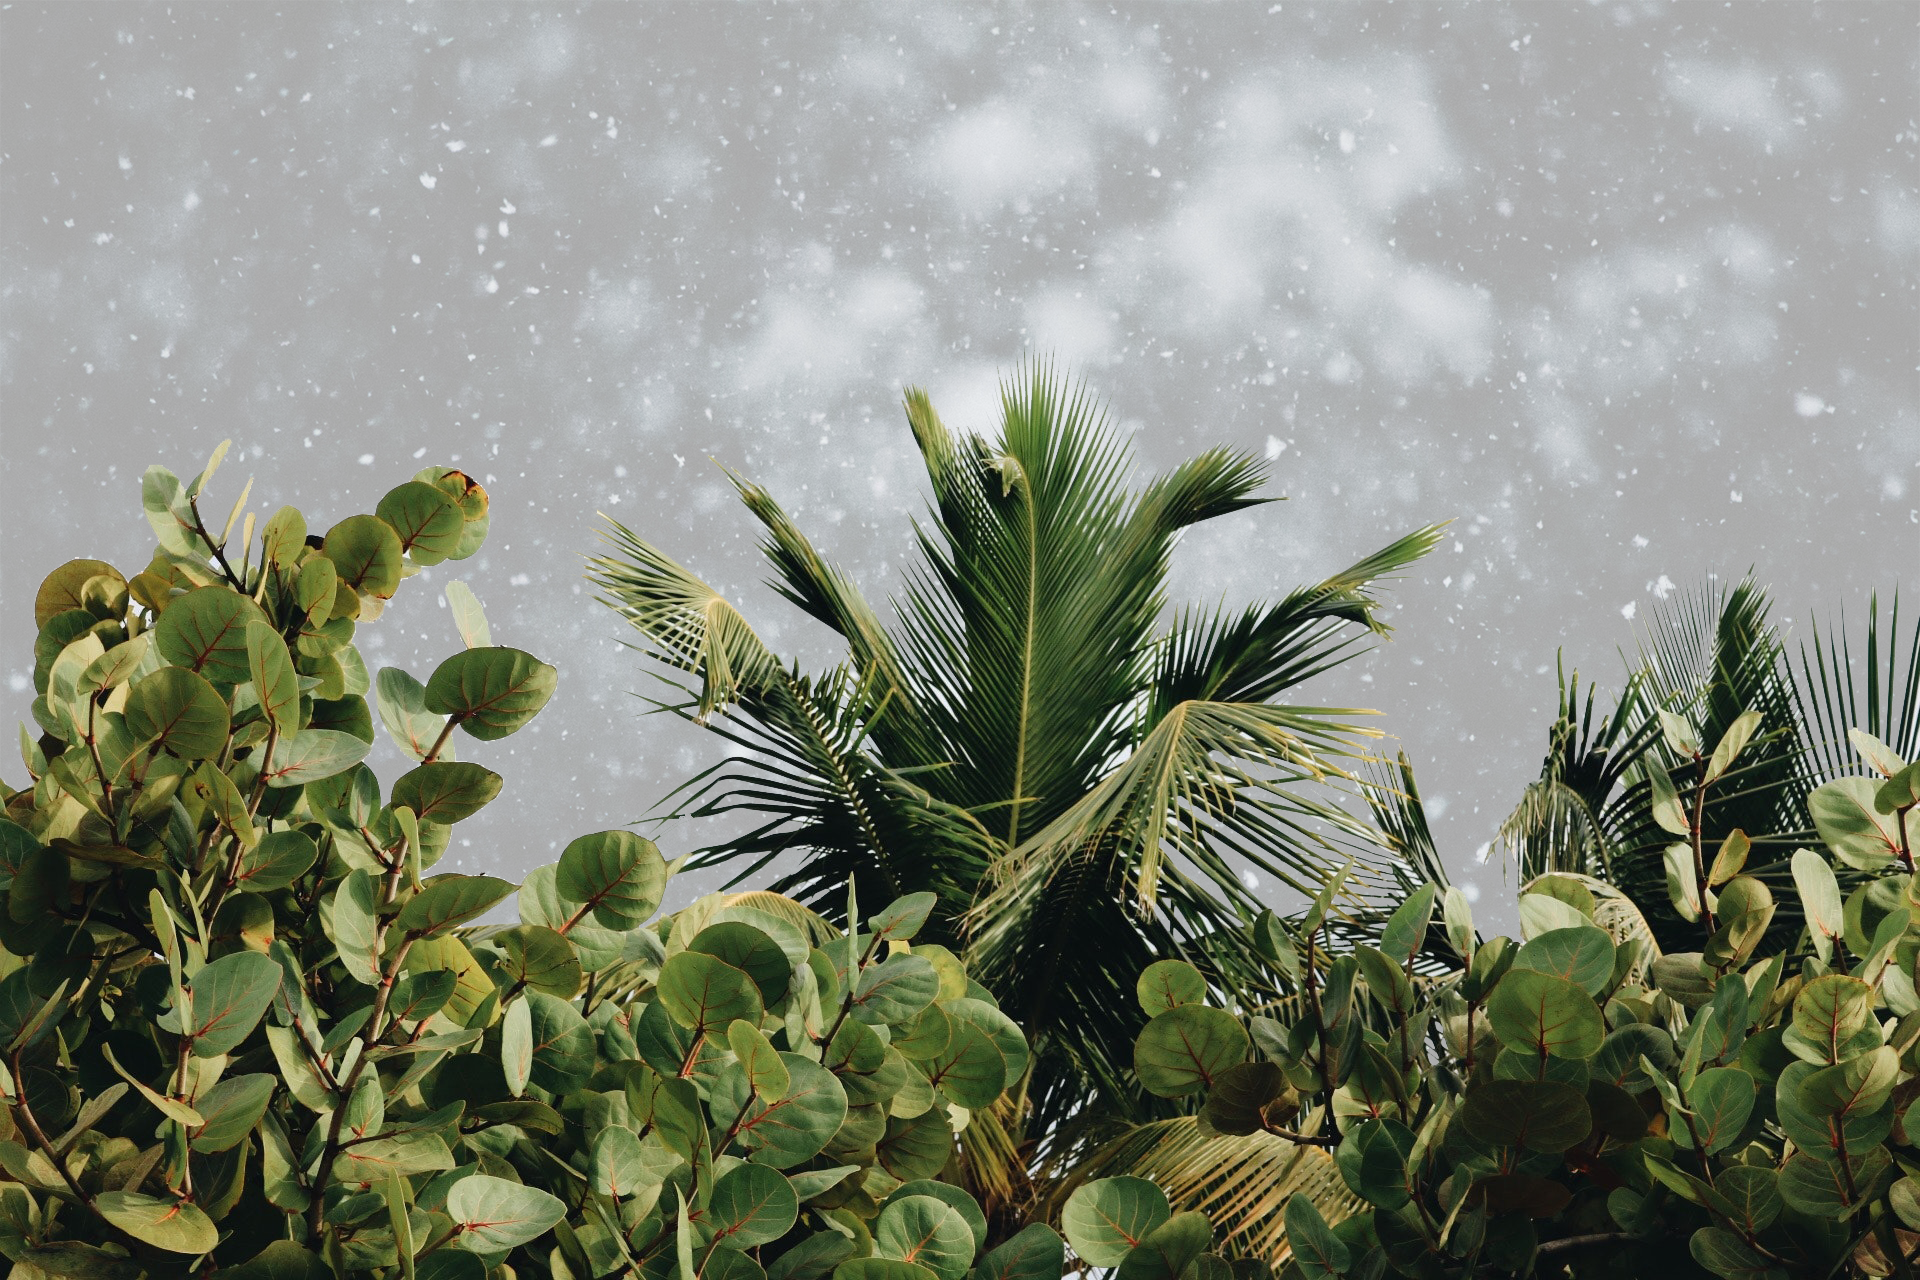 Small palm trees in the snow